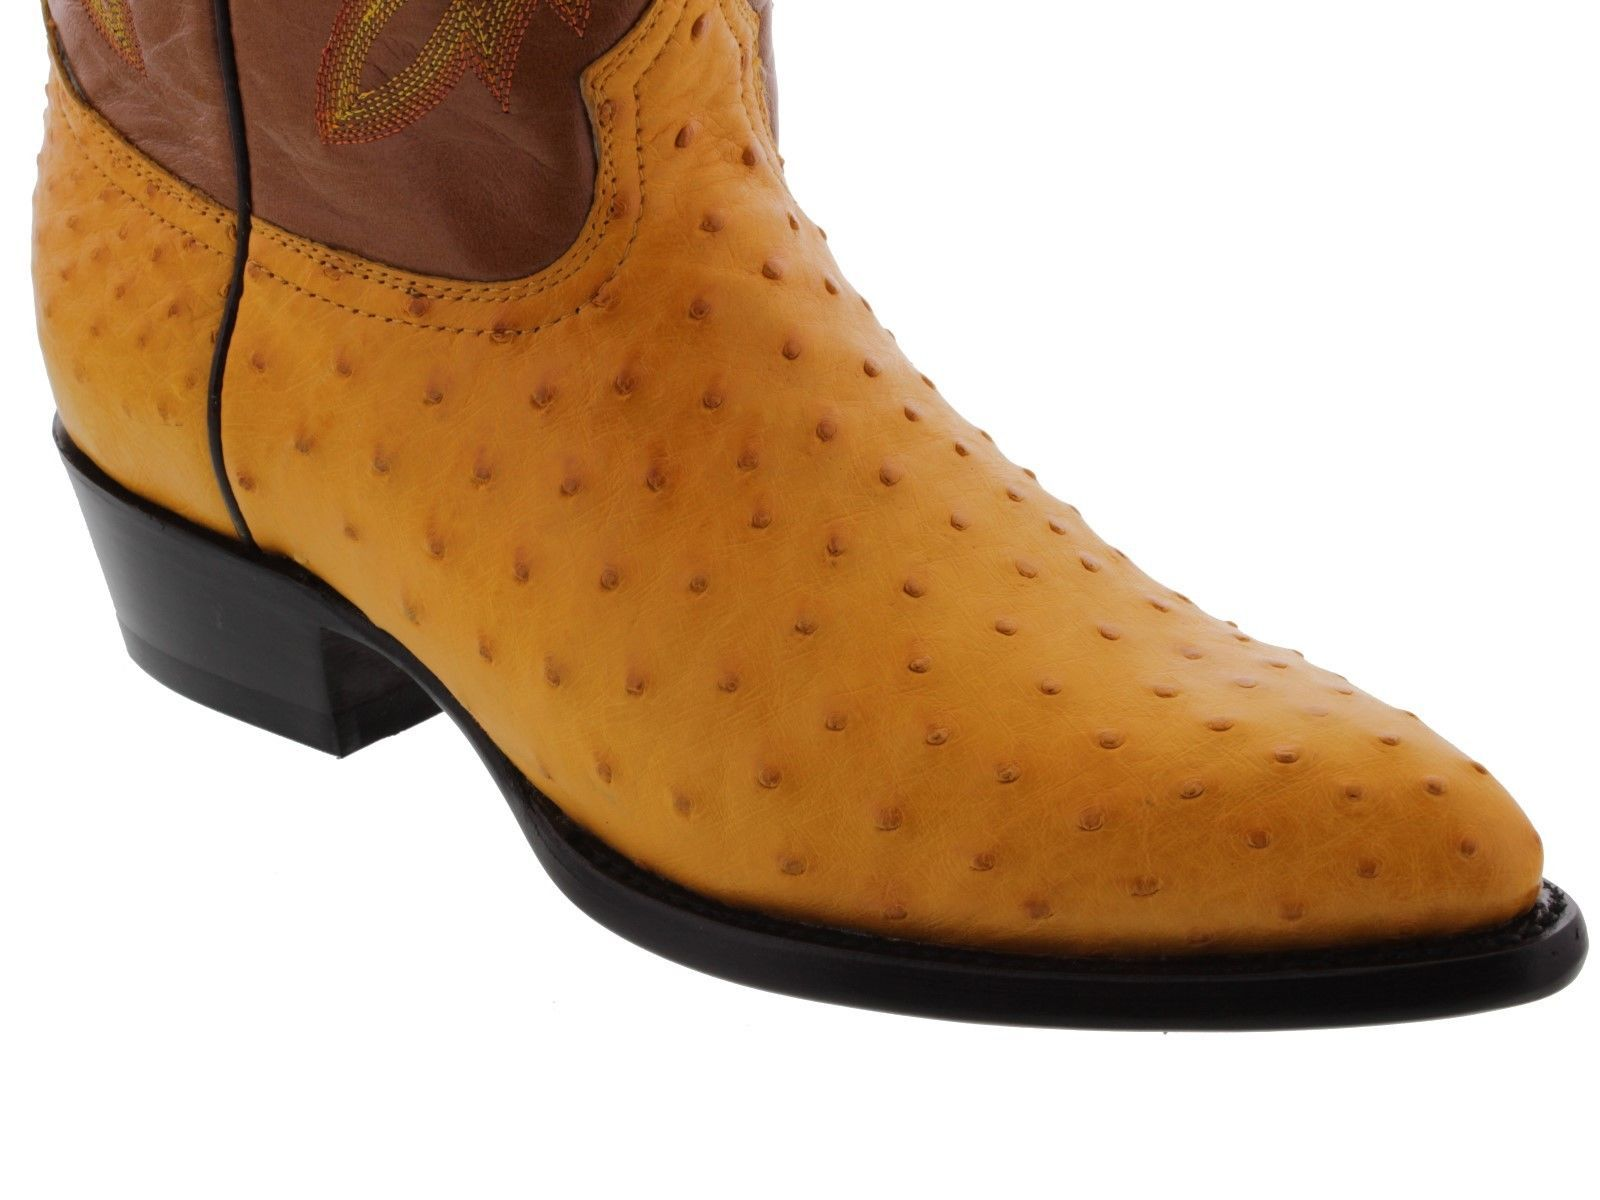 mens yellow butter real ostrich skin crocodile leather western cowboy boots